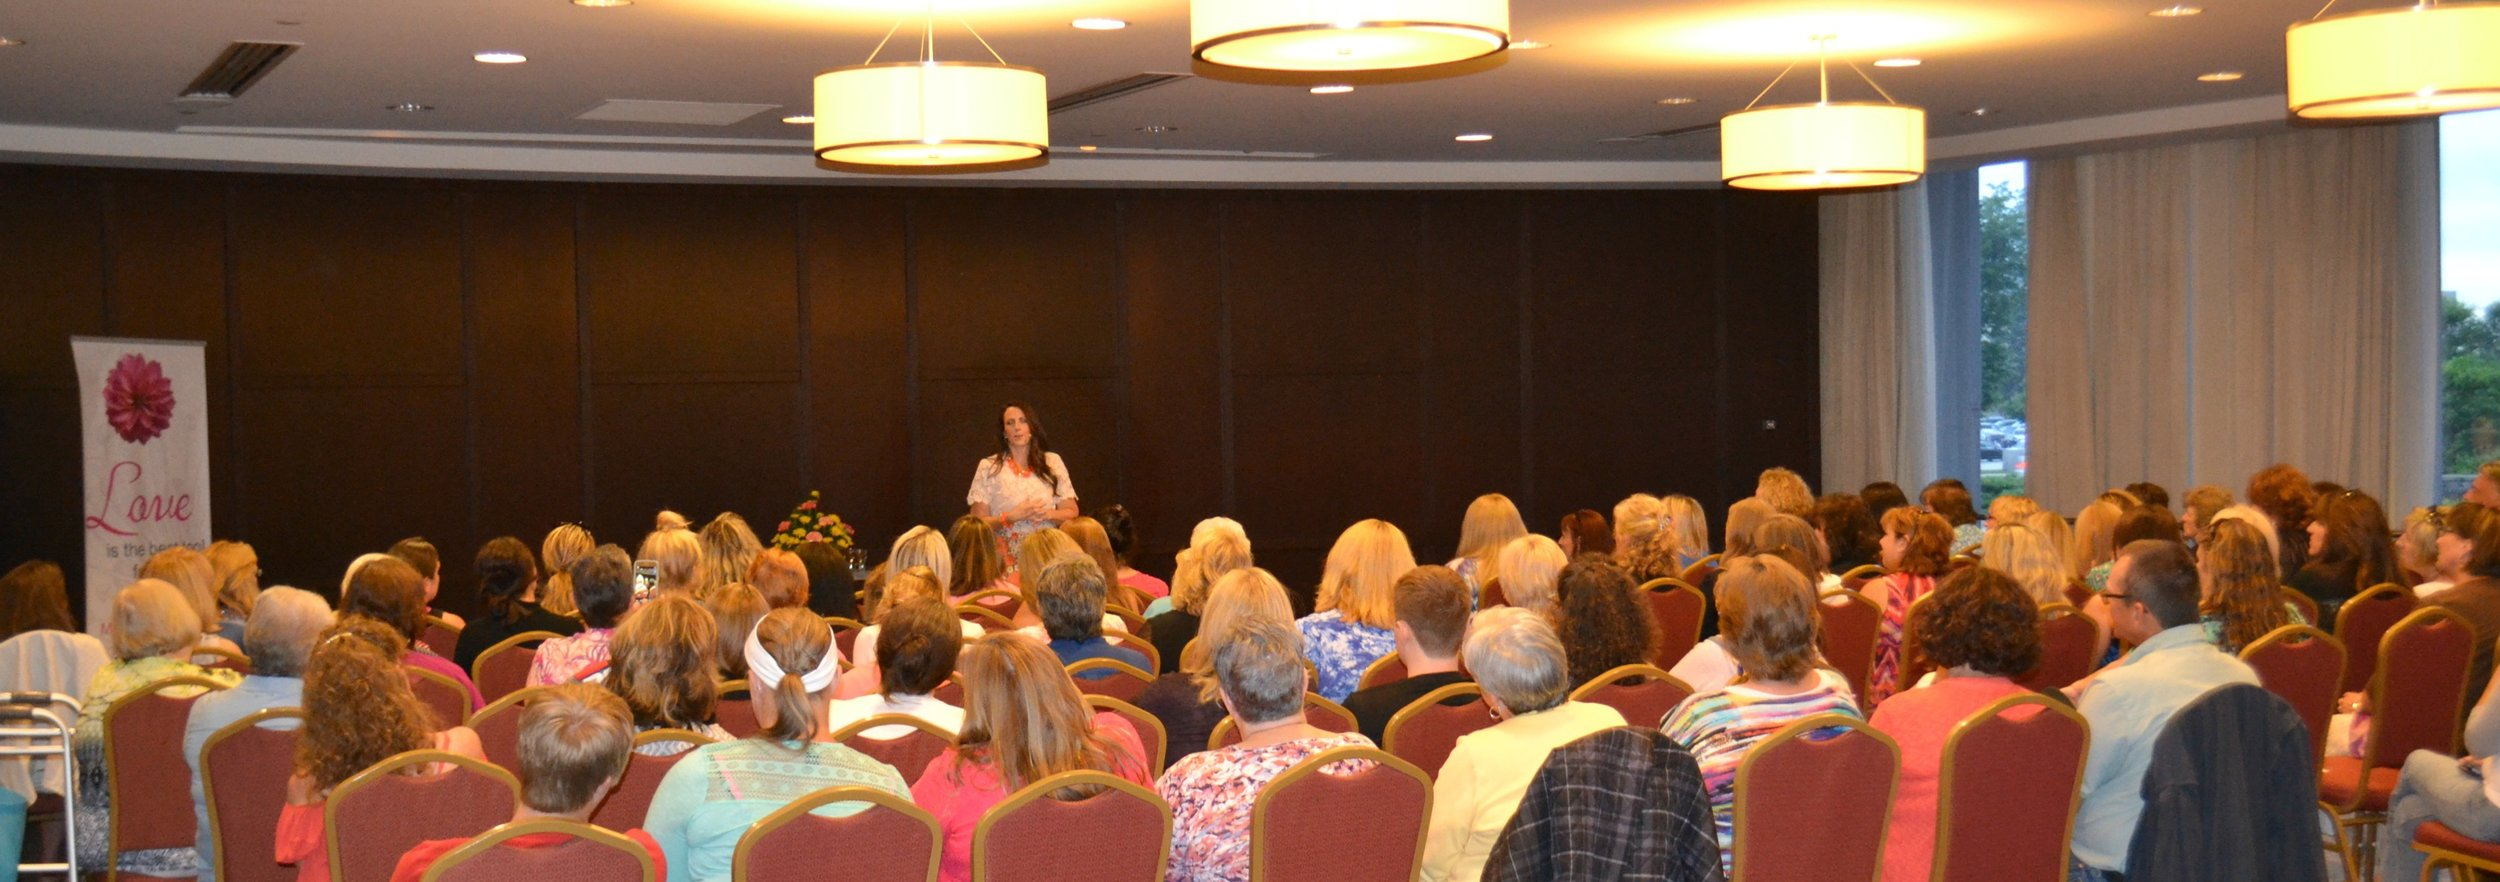 Messages from Deceased Loved Ones in Spirit - Psychic Medium Event in Portland OR Sept 18 2016